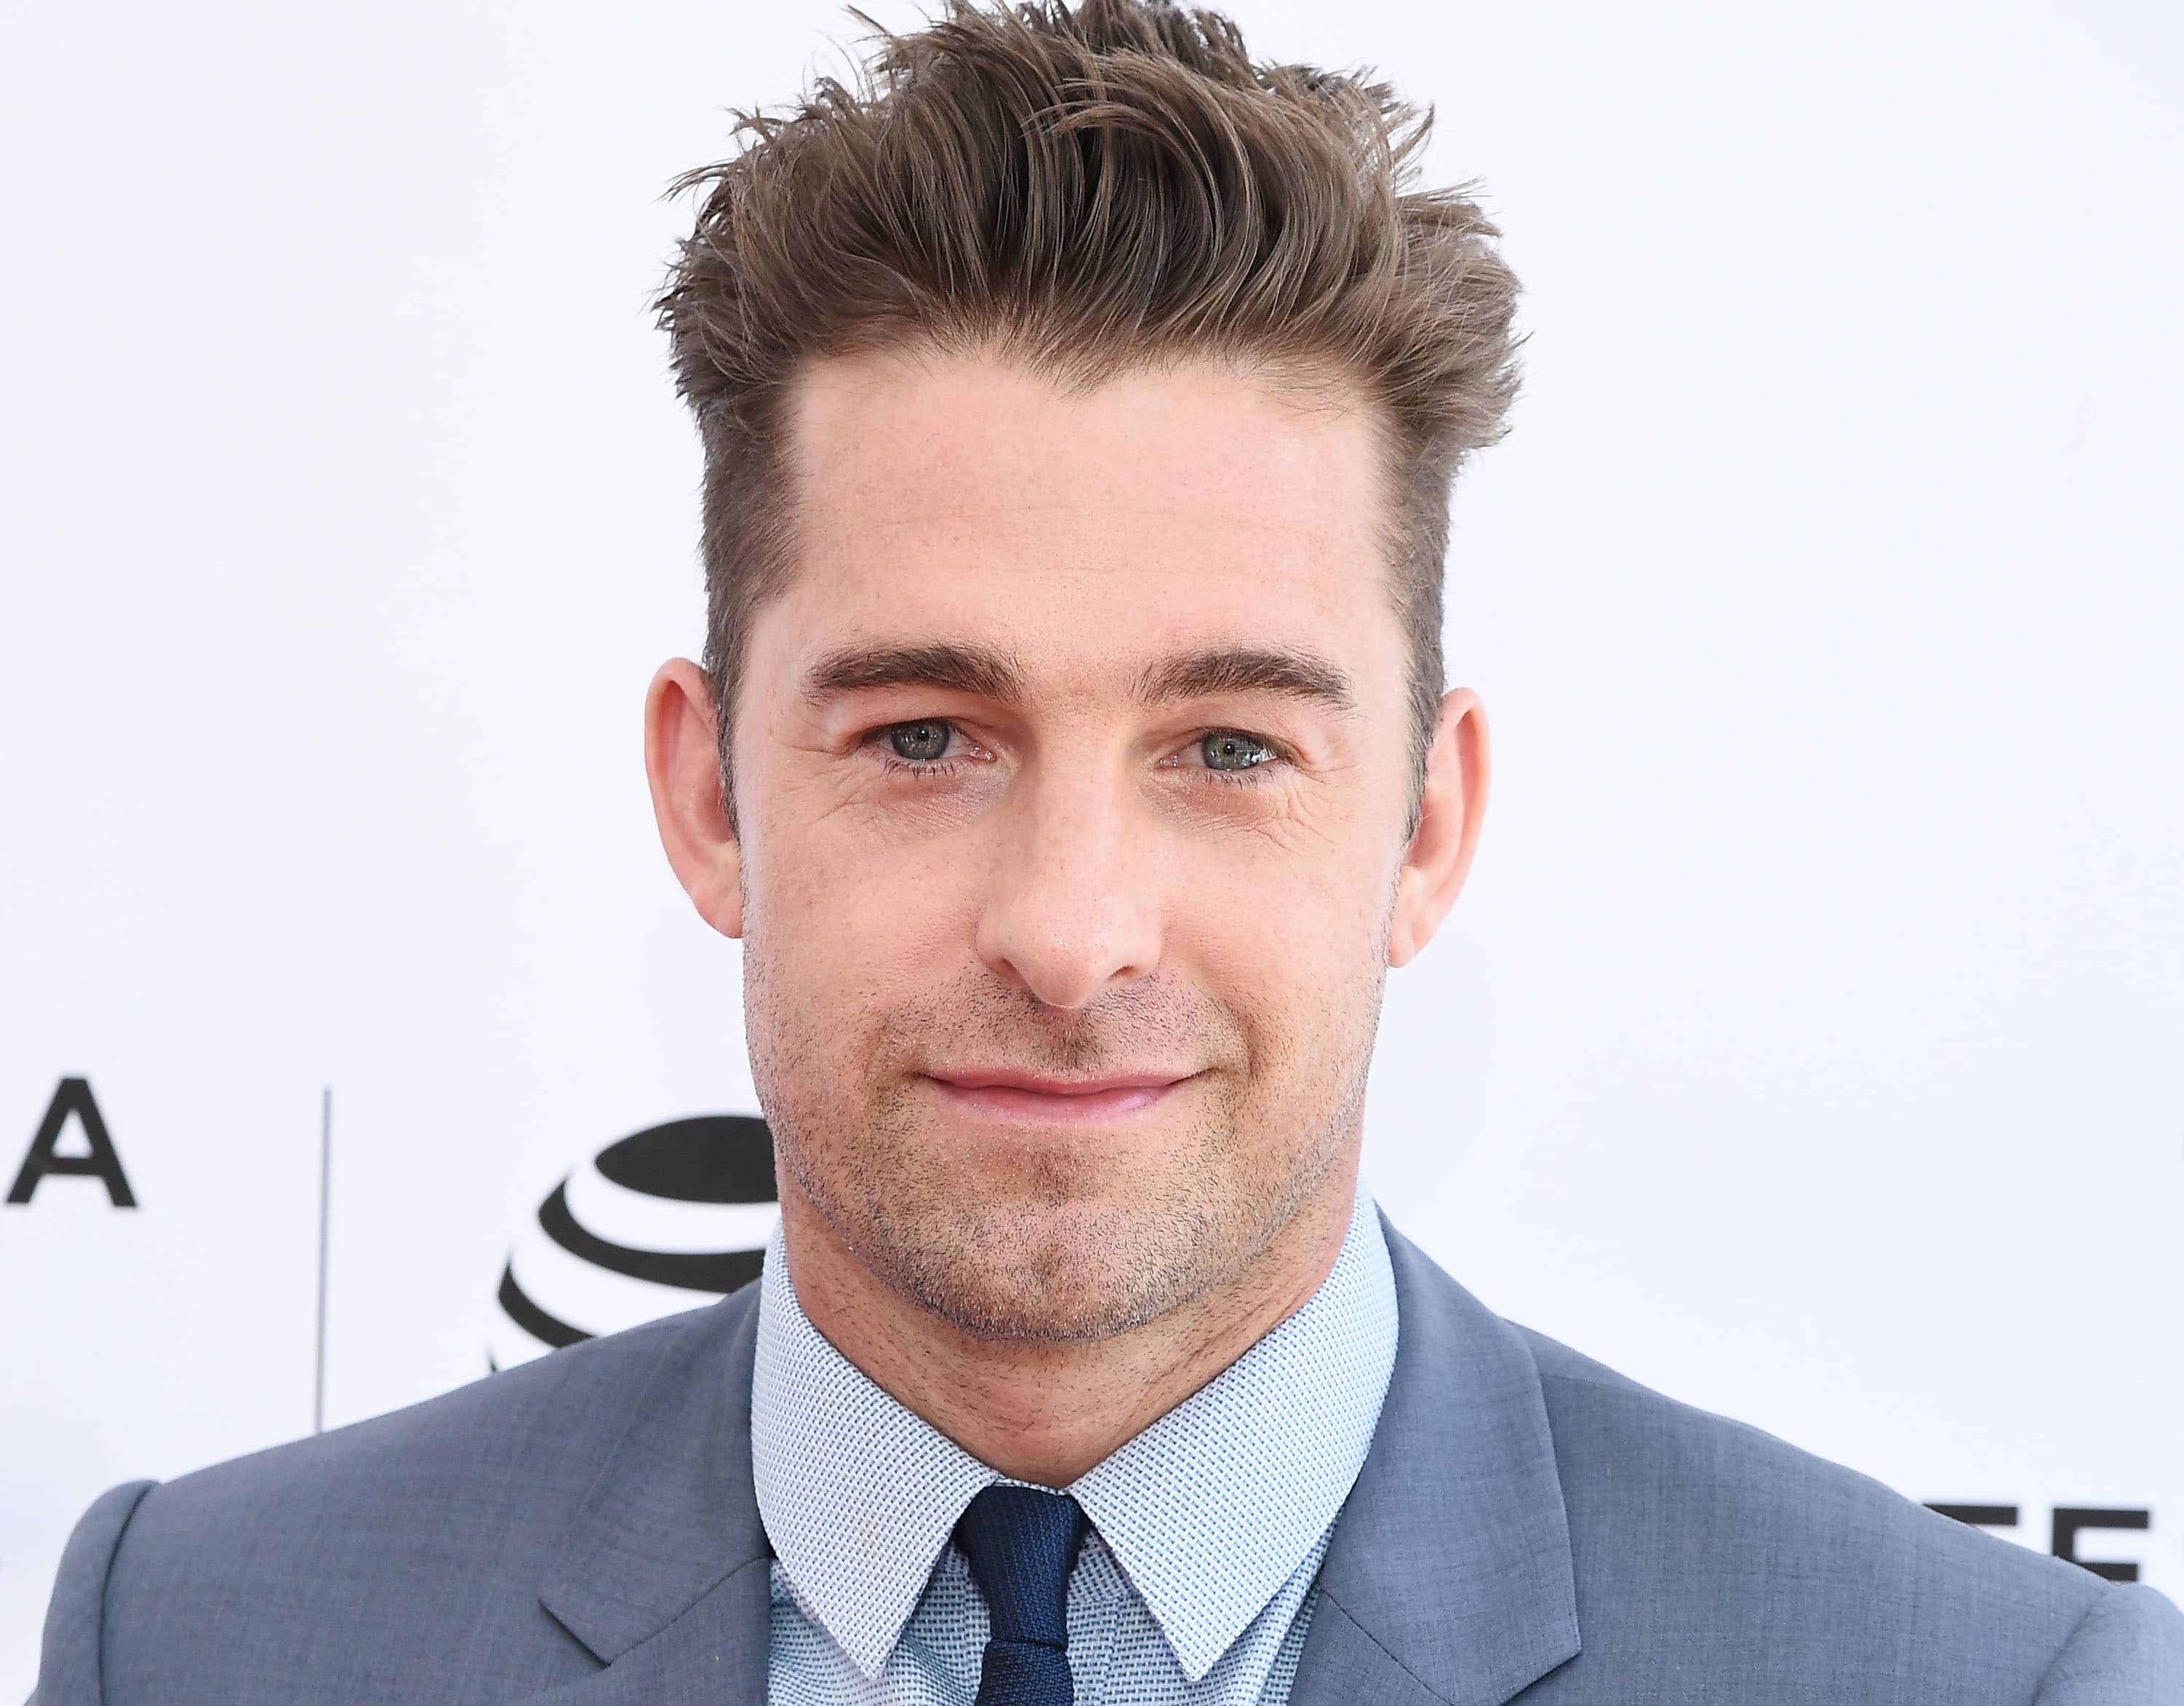 Image of: Film Animal Kingdom Collider Greys Anatomy Admits Scott Speedman Is He Leaving Animal Kingdom